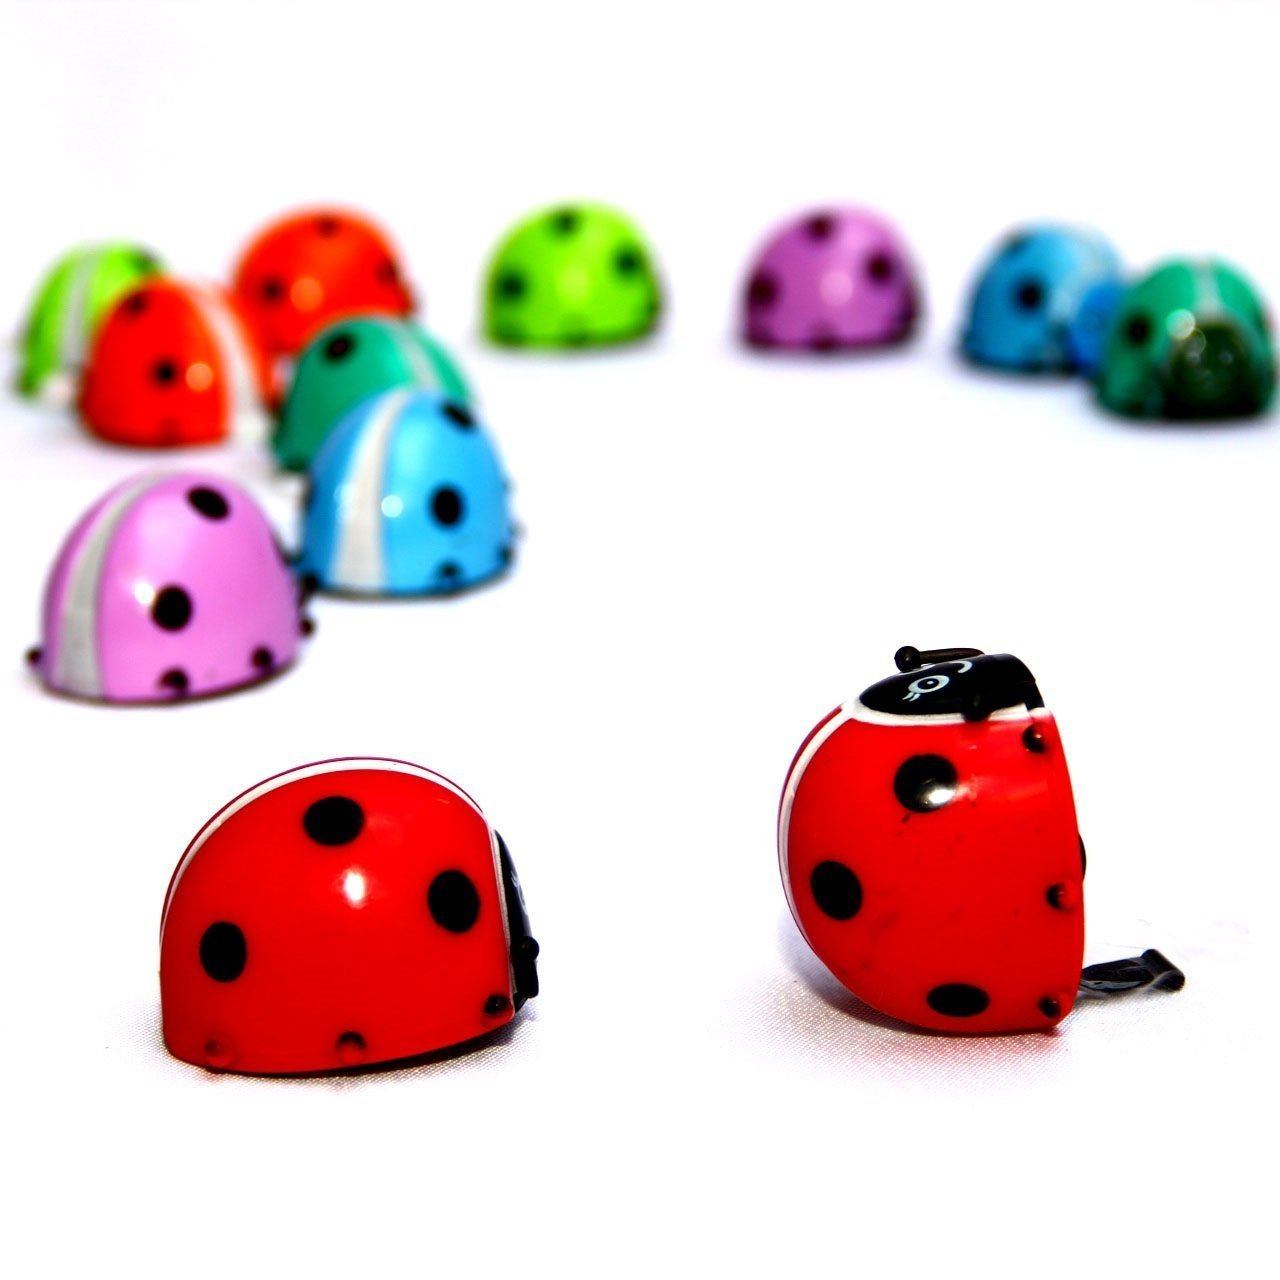 Dazzling Toys Flipping Wind-up Lady Bugs - 12 Pack - Bulk. Great for parties and Favor bags